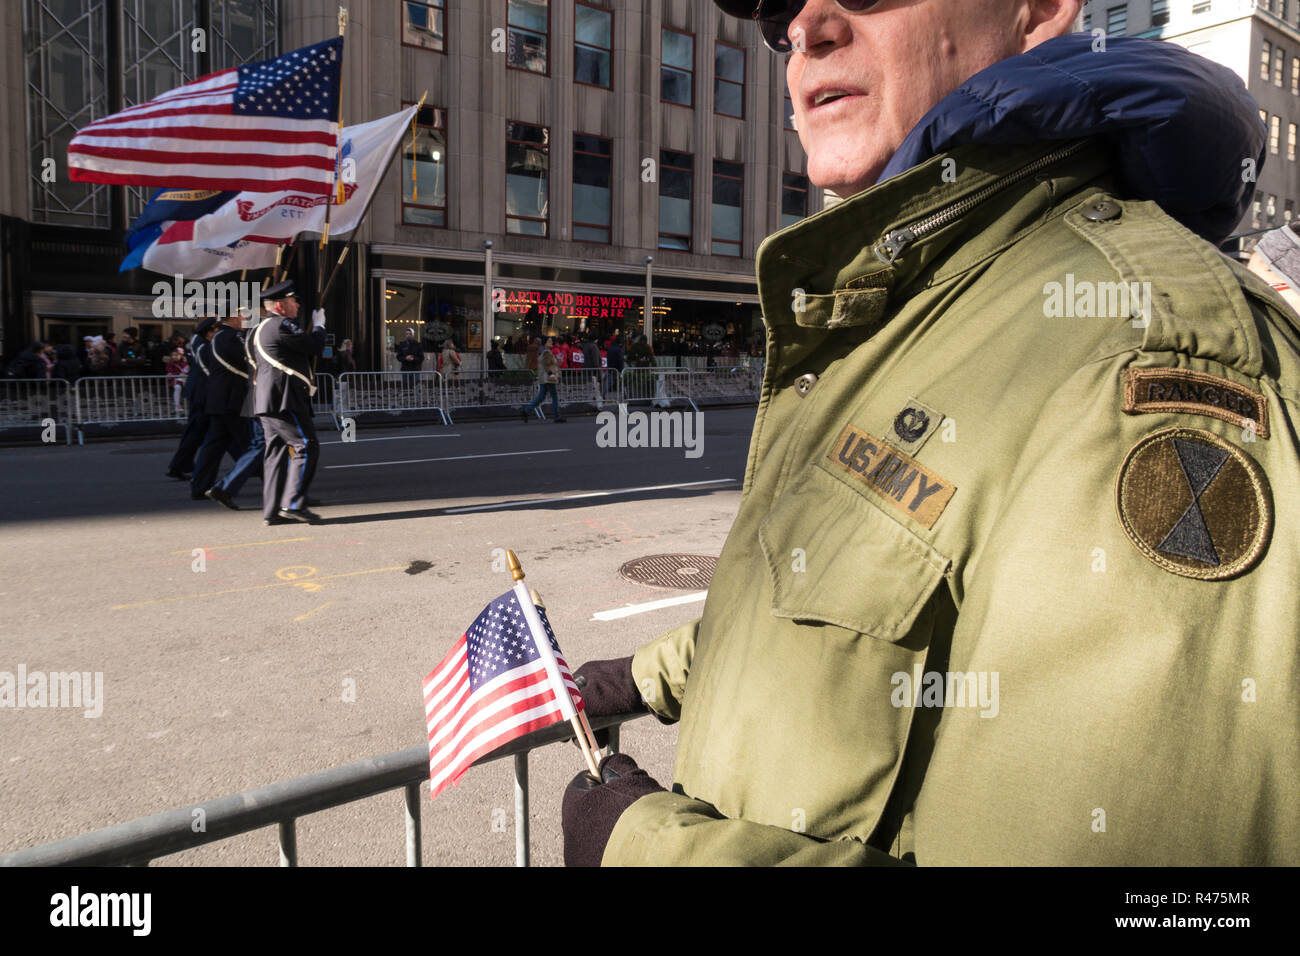 2018 Jährliche Veterans Day Parade auf der Fifth Avenue, New York, USA Stockbild